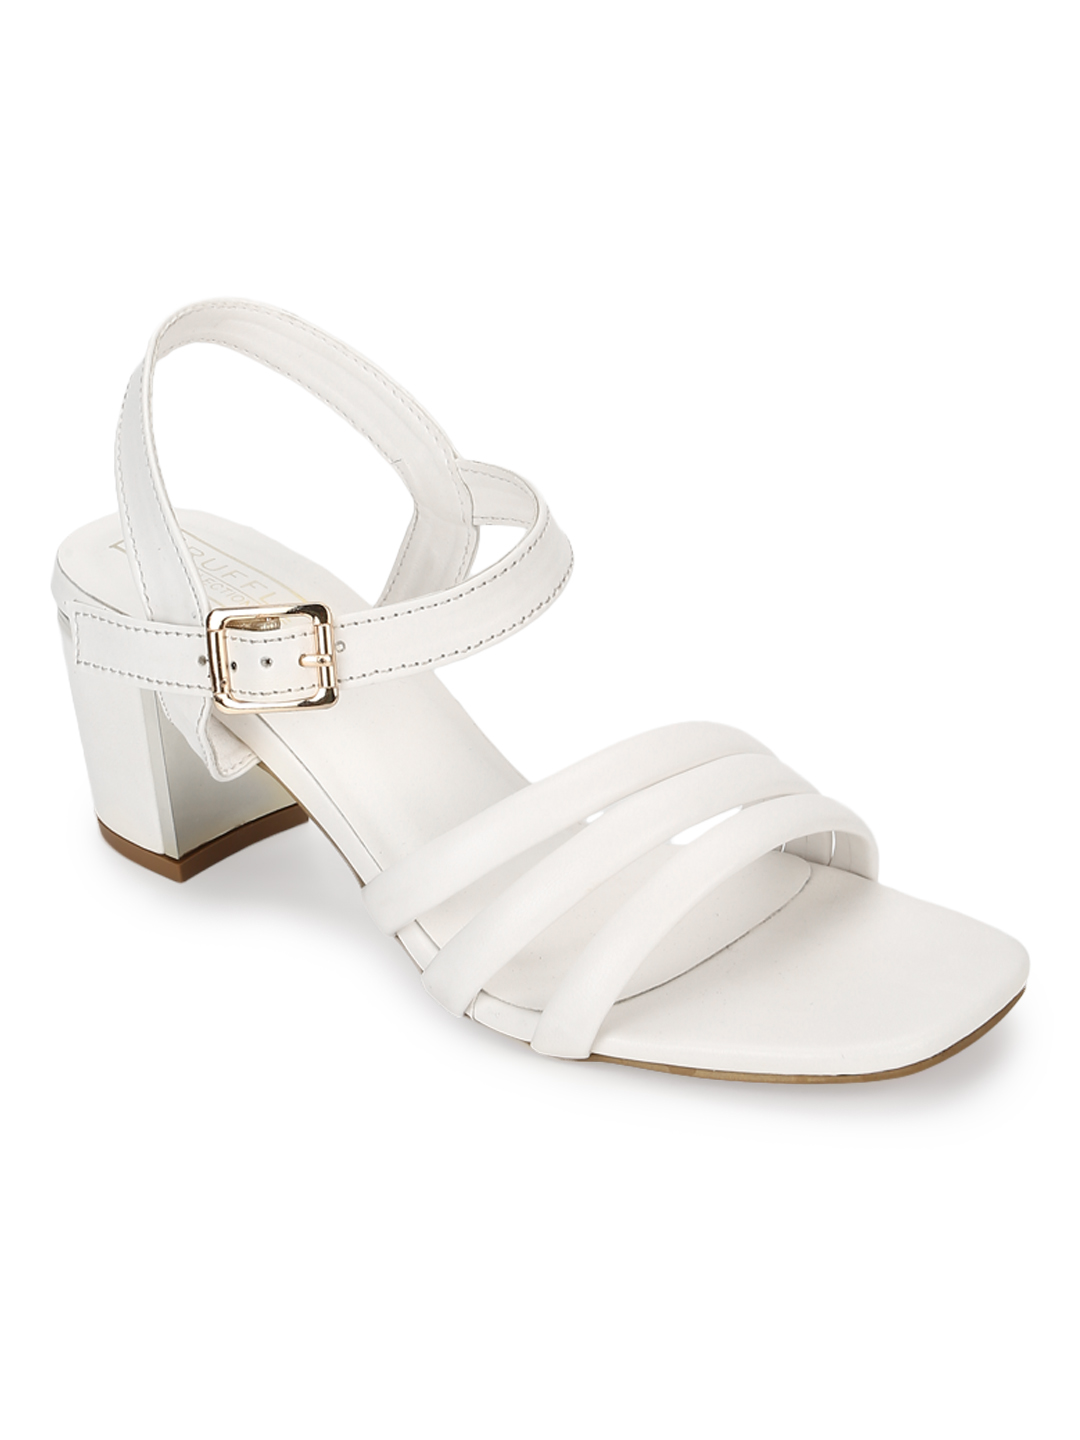 Truffle Collection | Truffle Collection White PU Block Heel Sandals